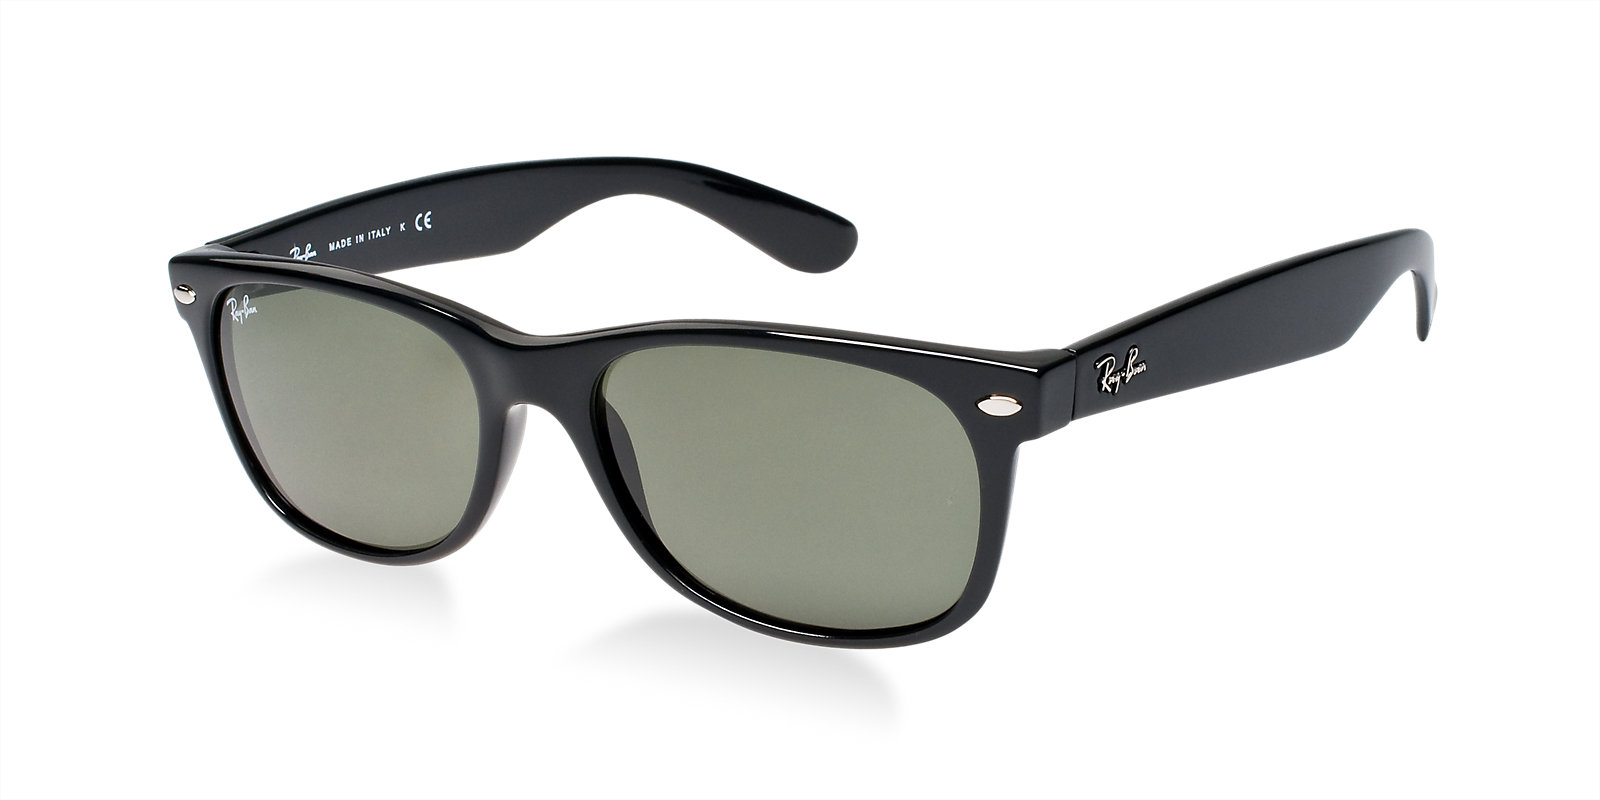 bceb8d3c60c Previous  Next. Previous  Next. RAY-BAN RB2132 901 BLACK NEW WAYFARER  SUNGLASSES